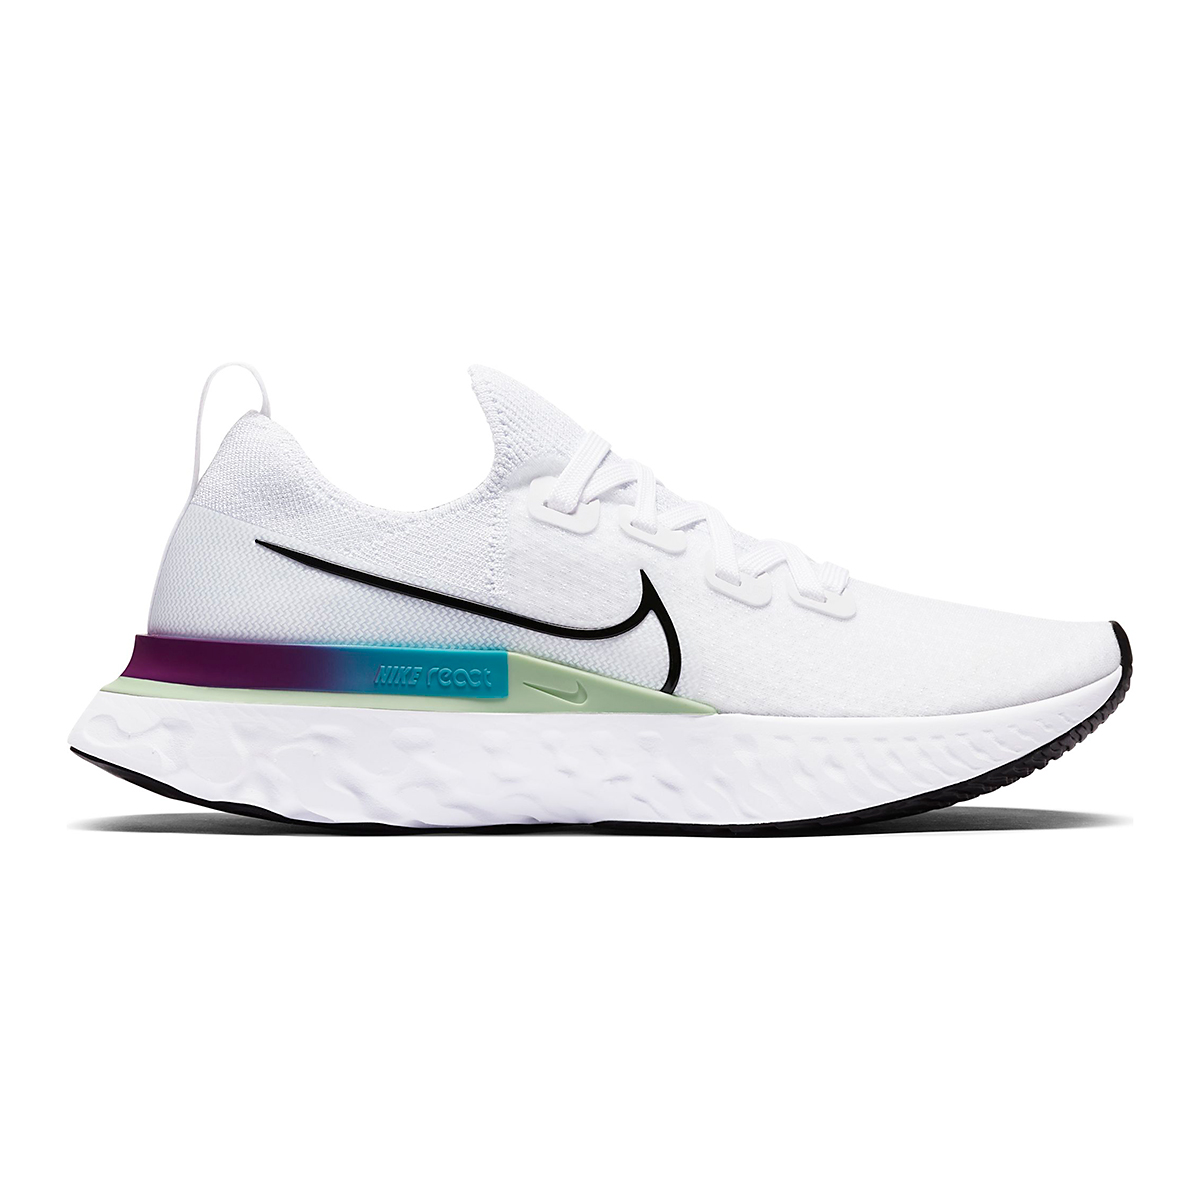 Women's Nike React Infinity Run Flyknit Running Shoe - Color: White/Vapor Green/Oracle Aqua/Black - Size: 5 - Width: Regular, White/Vapor Green/Oracle Aqua/Black, large, image 1